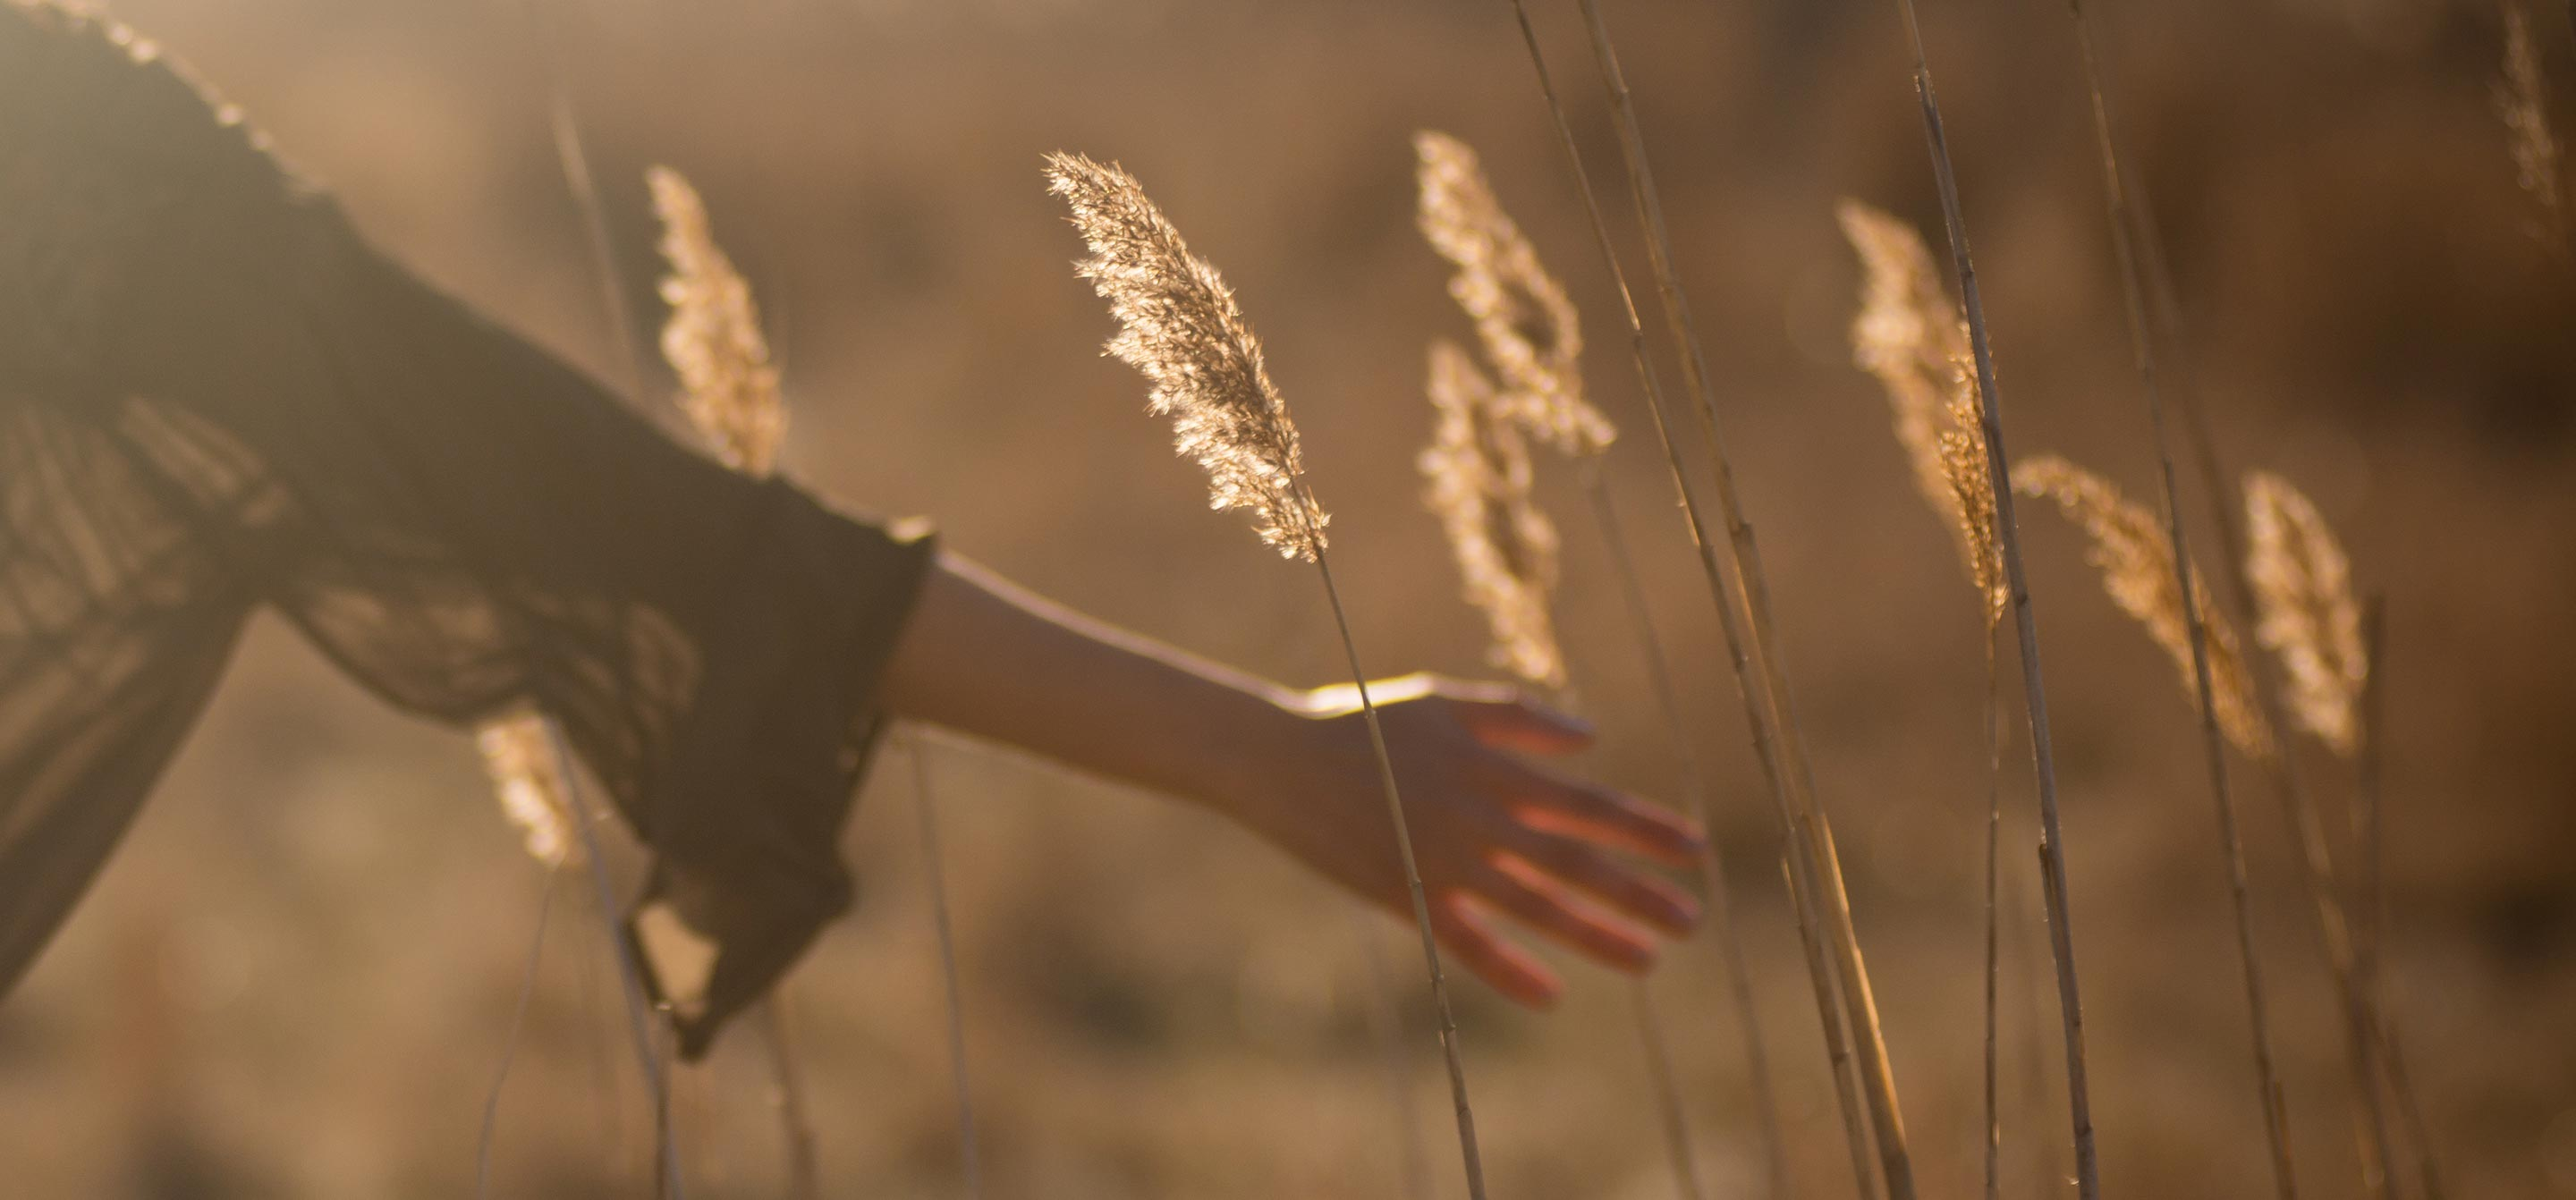 A person's hand passing through a field of wheat